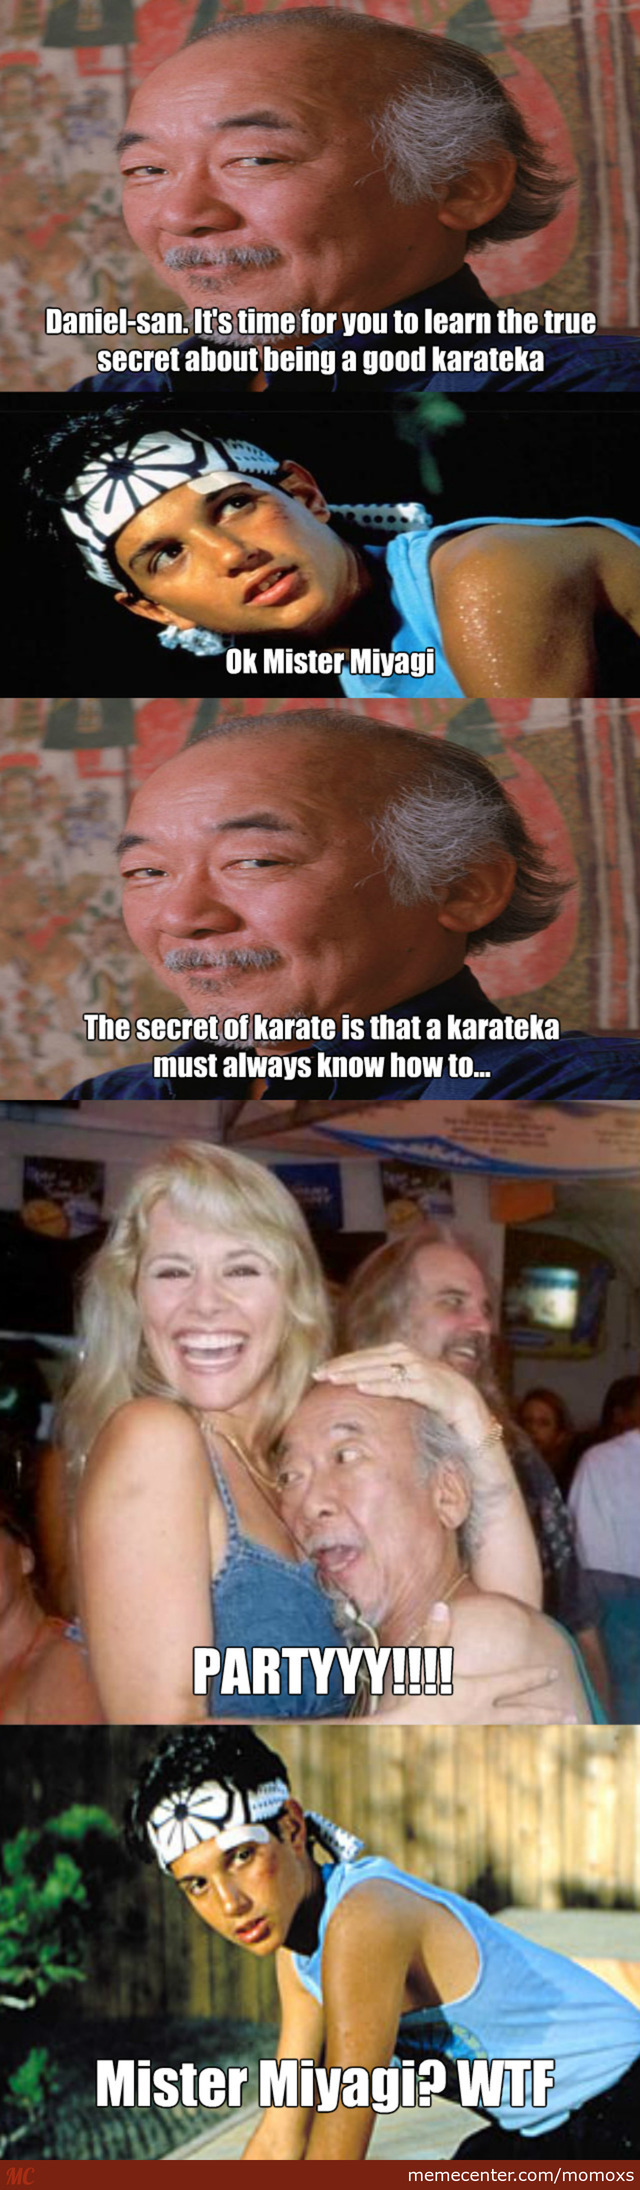 Mr. Miyagi's True Secret About Karate